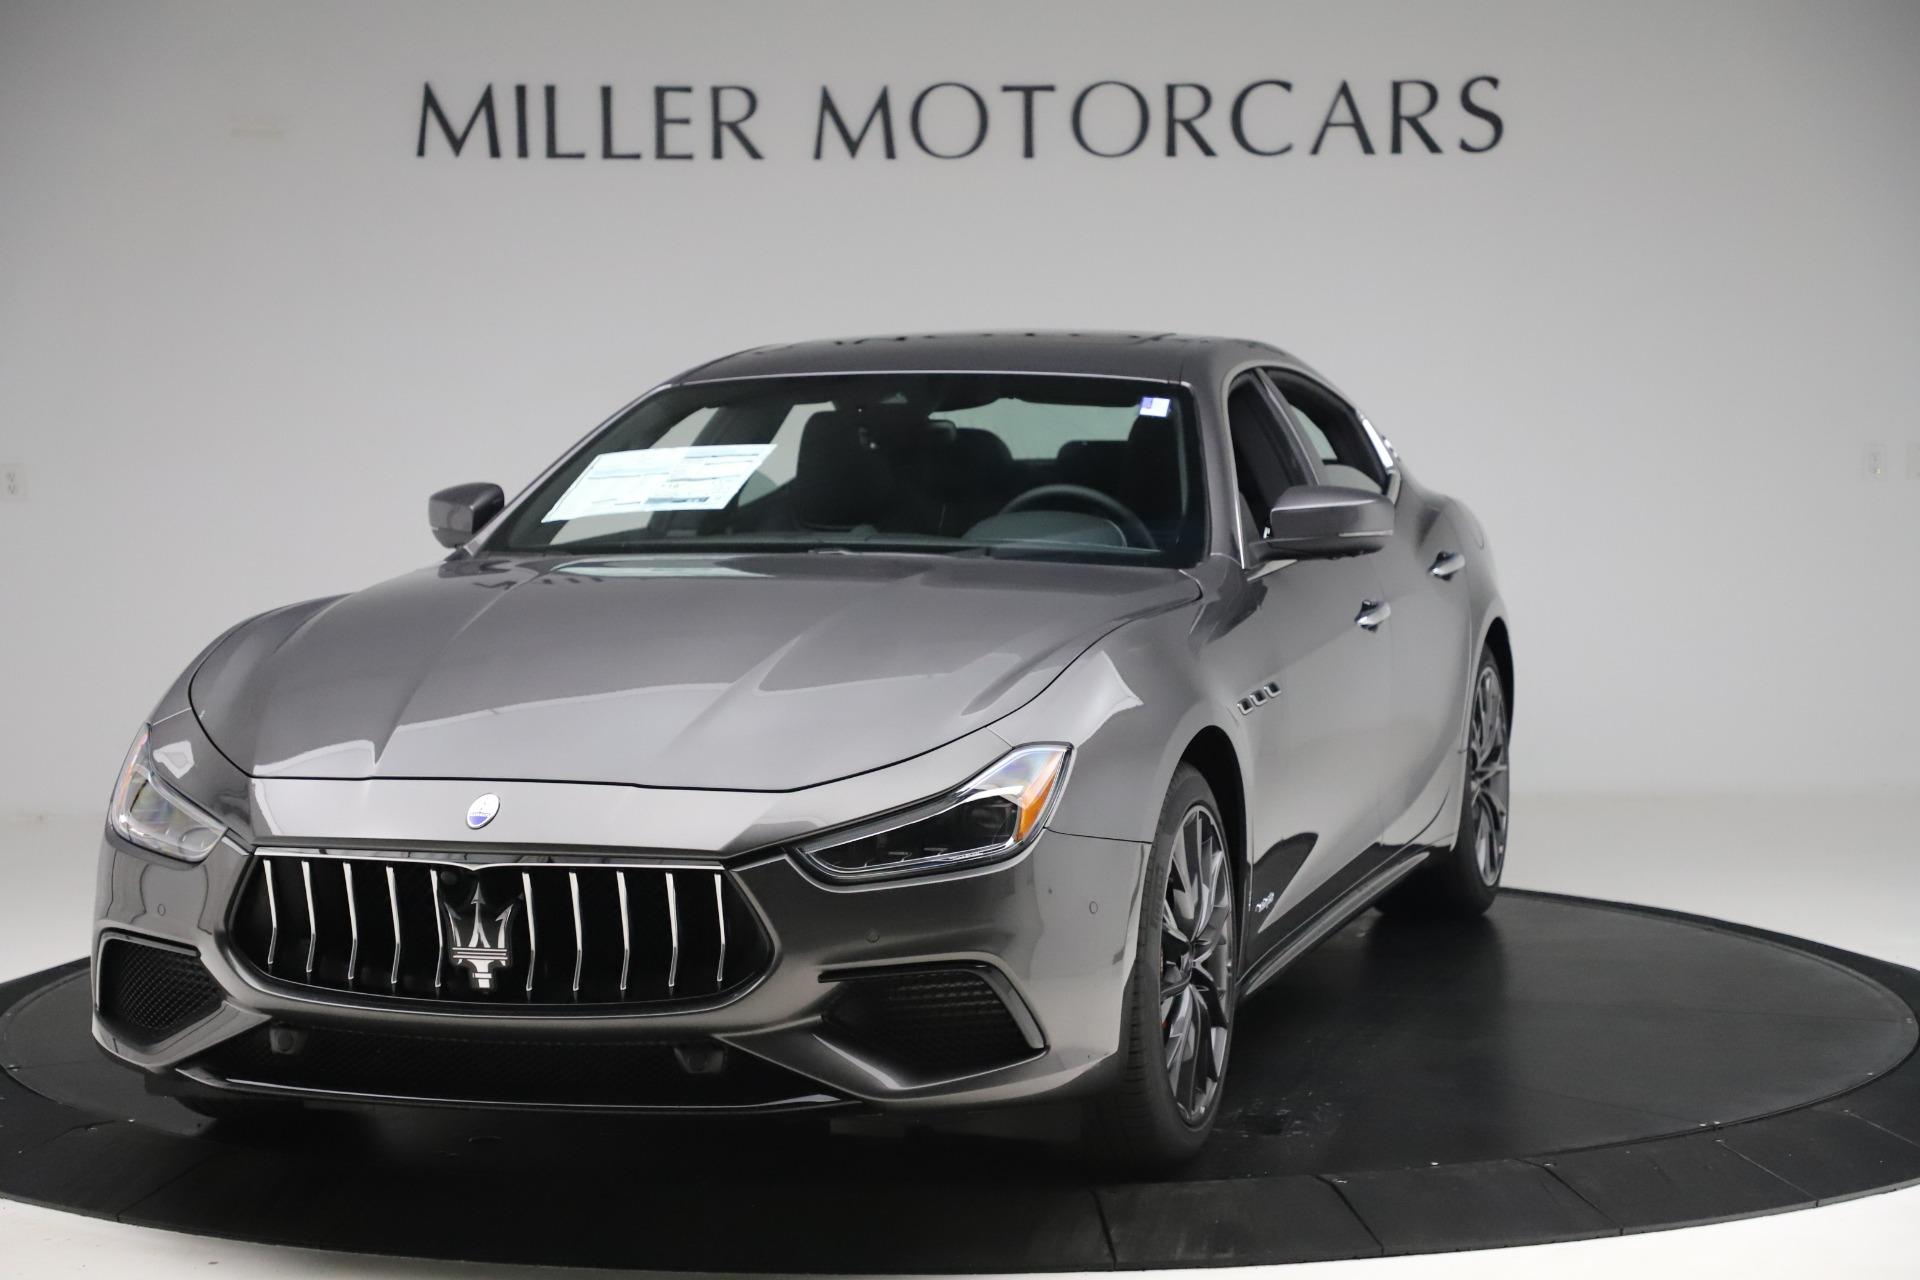 New 2019 Maserati Ghibli SQ4 GranSport for sale $100,695 at Bentley Greenwich in Greenwich CT 06830 1